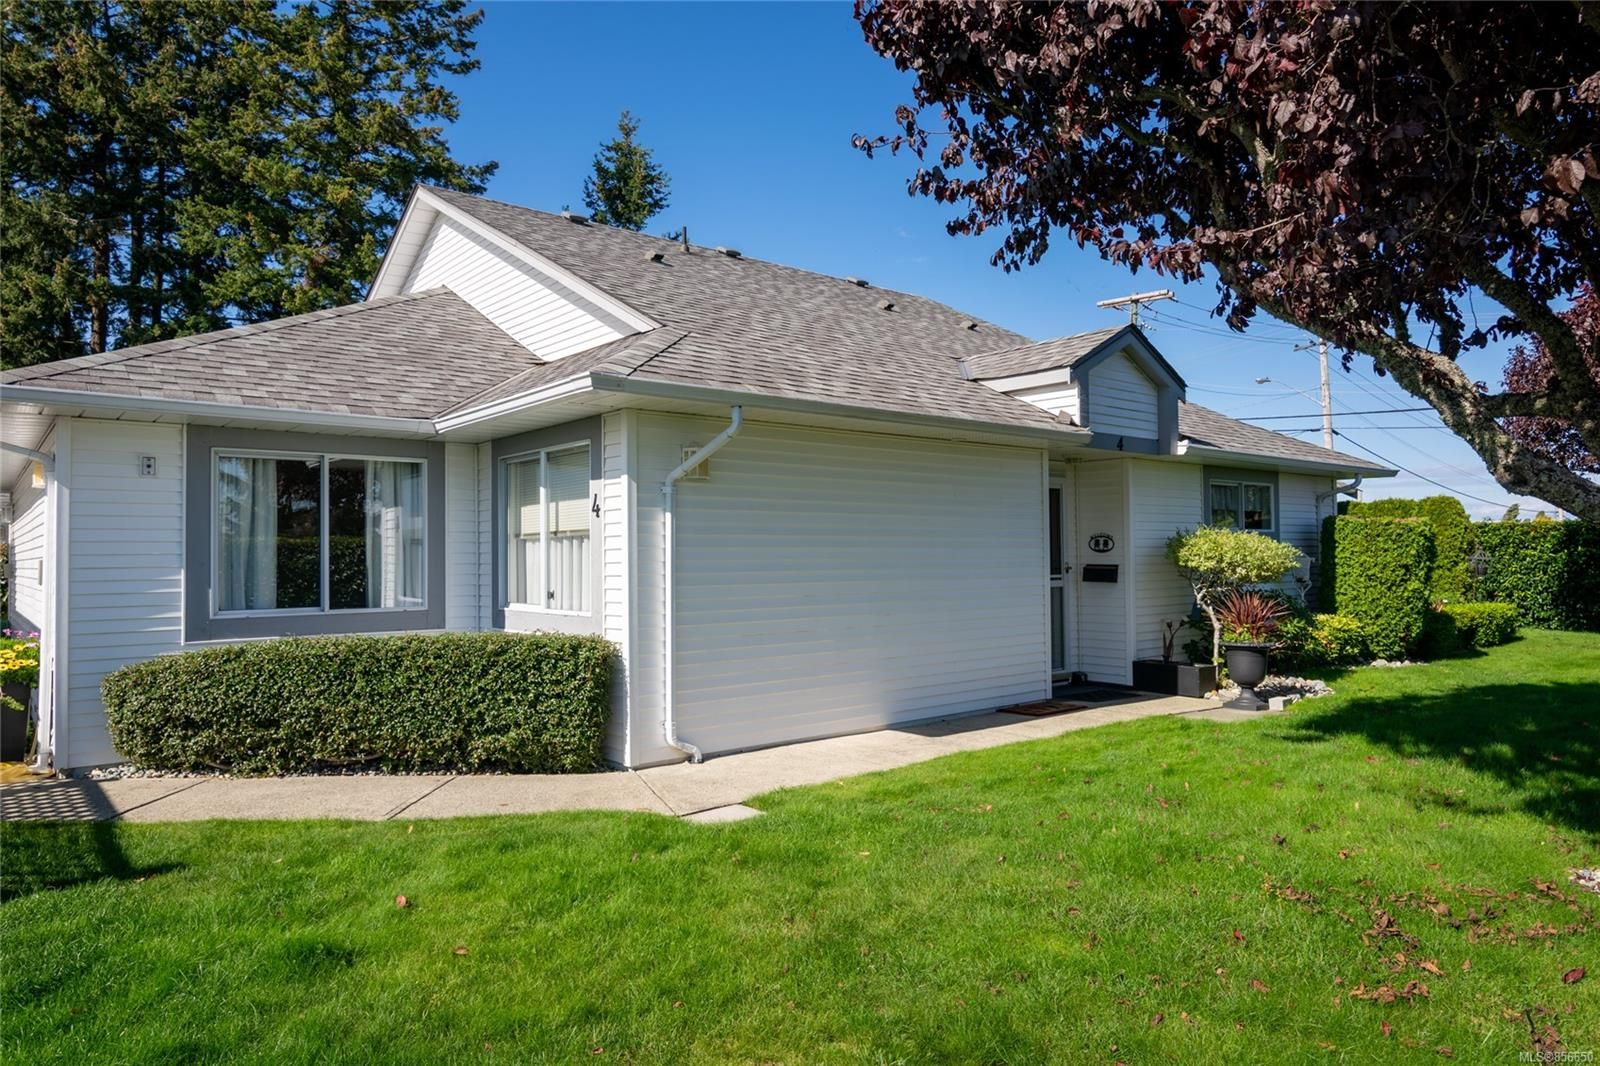 Photo 23: Photos: 4 305 Blower Rd in : PQ Parksville Row/Townhouse for sale (Parksville/Qualicum)  : MLS®# 856650